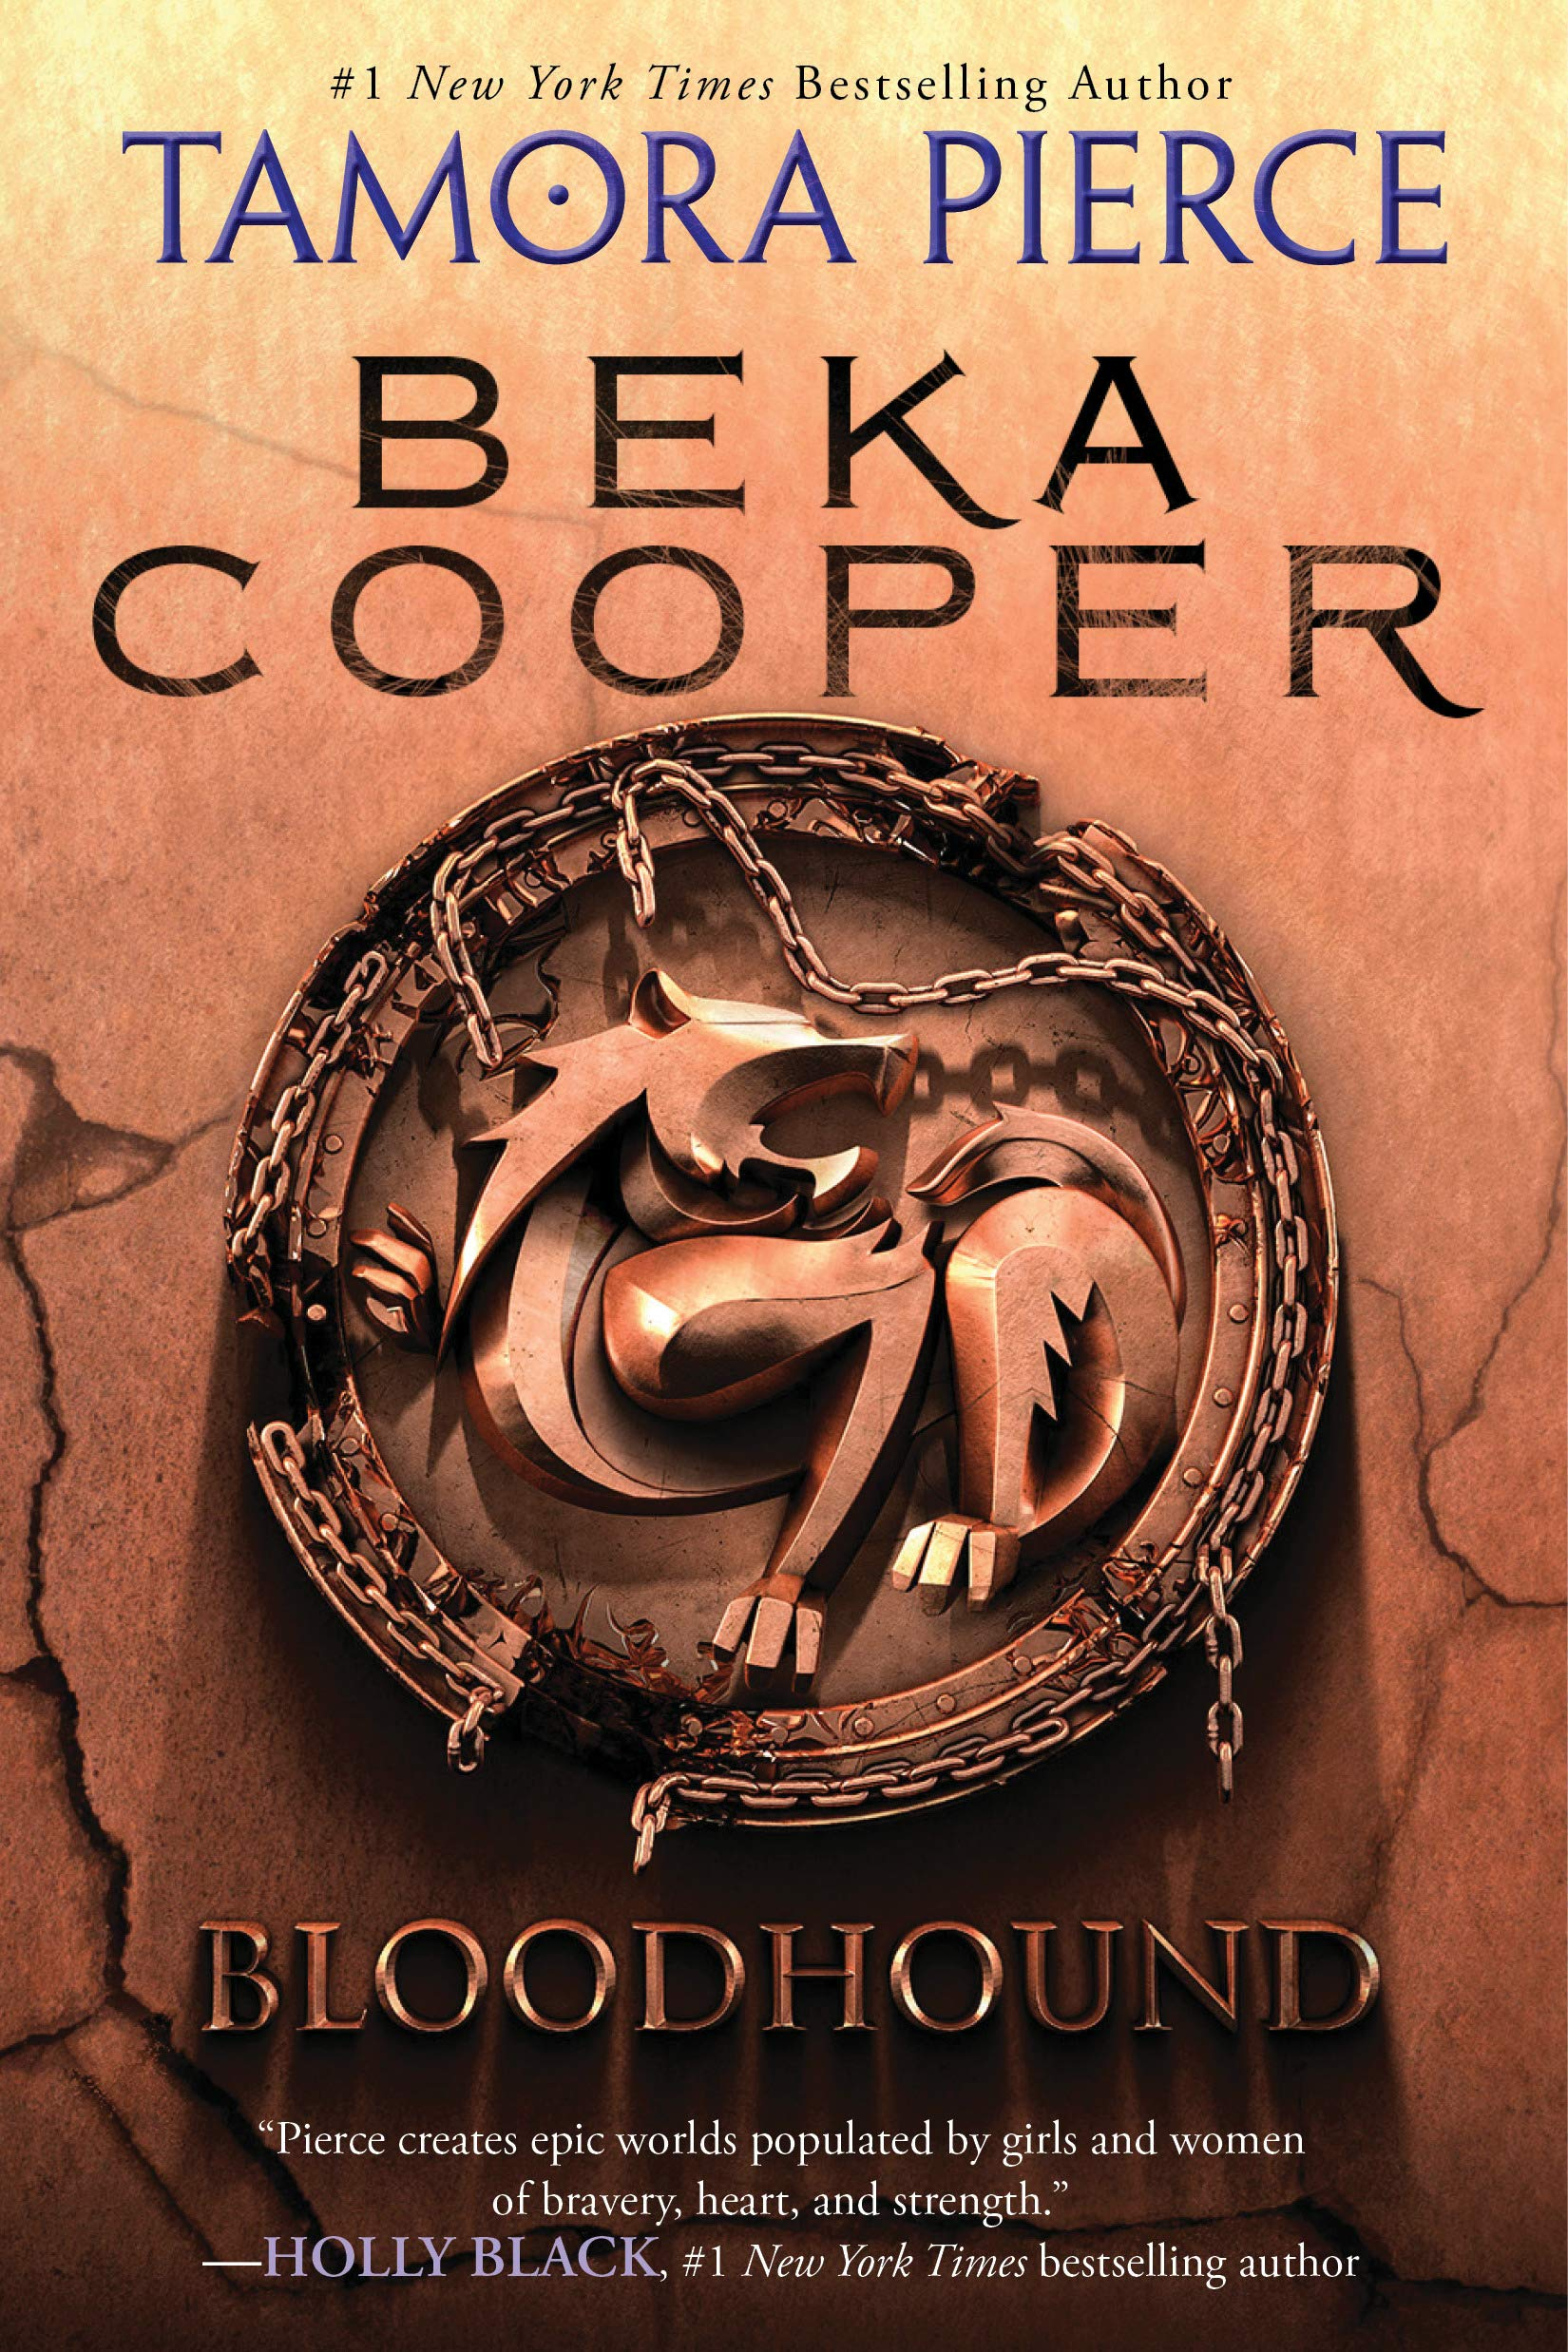 Amazon.com: Bloodhound: The Legend of Beka Cooper #2 (9780375838170):  Tamora Pierce: Books